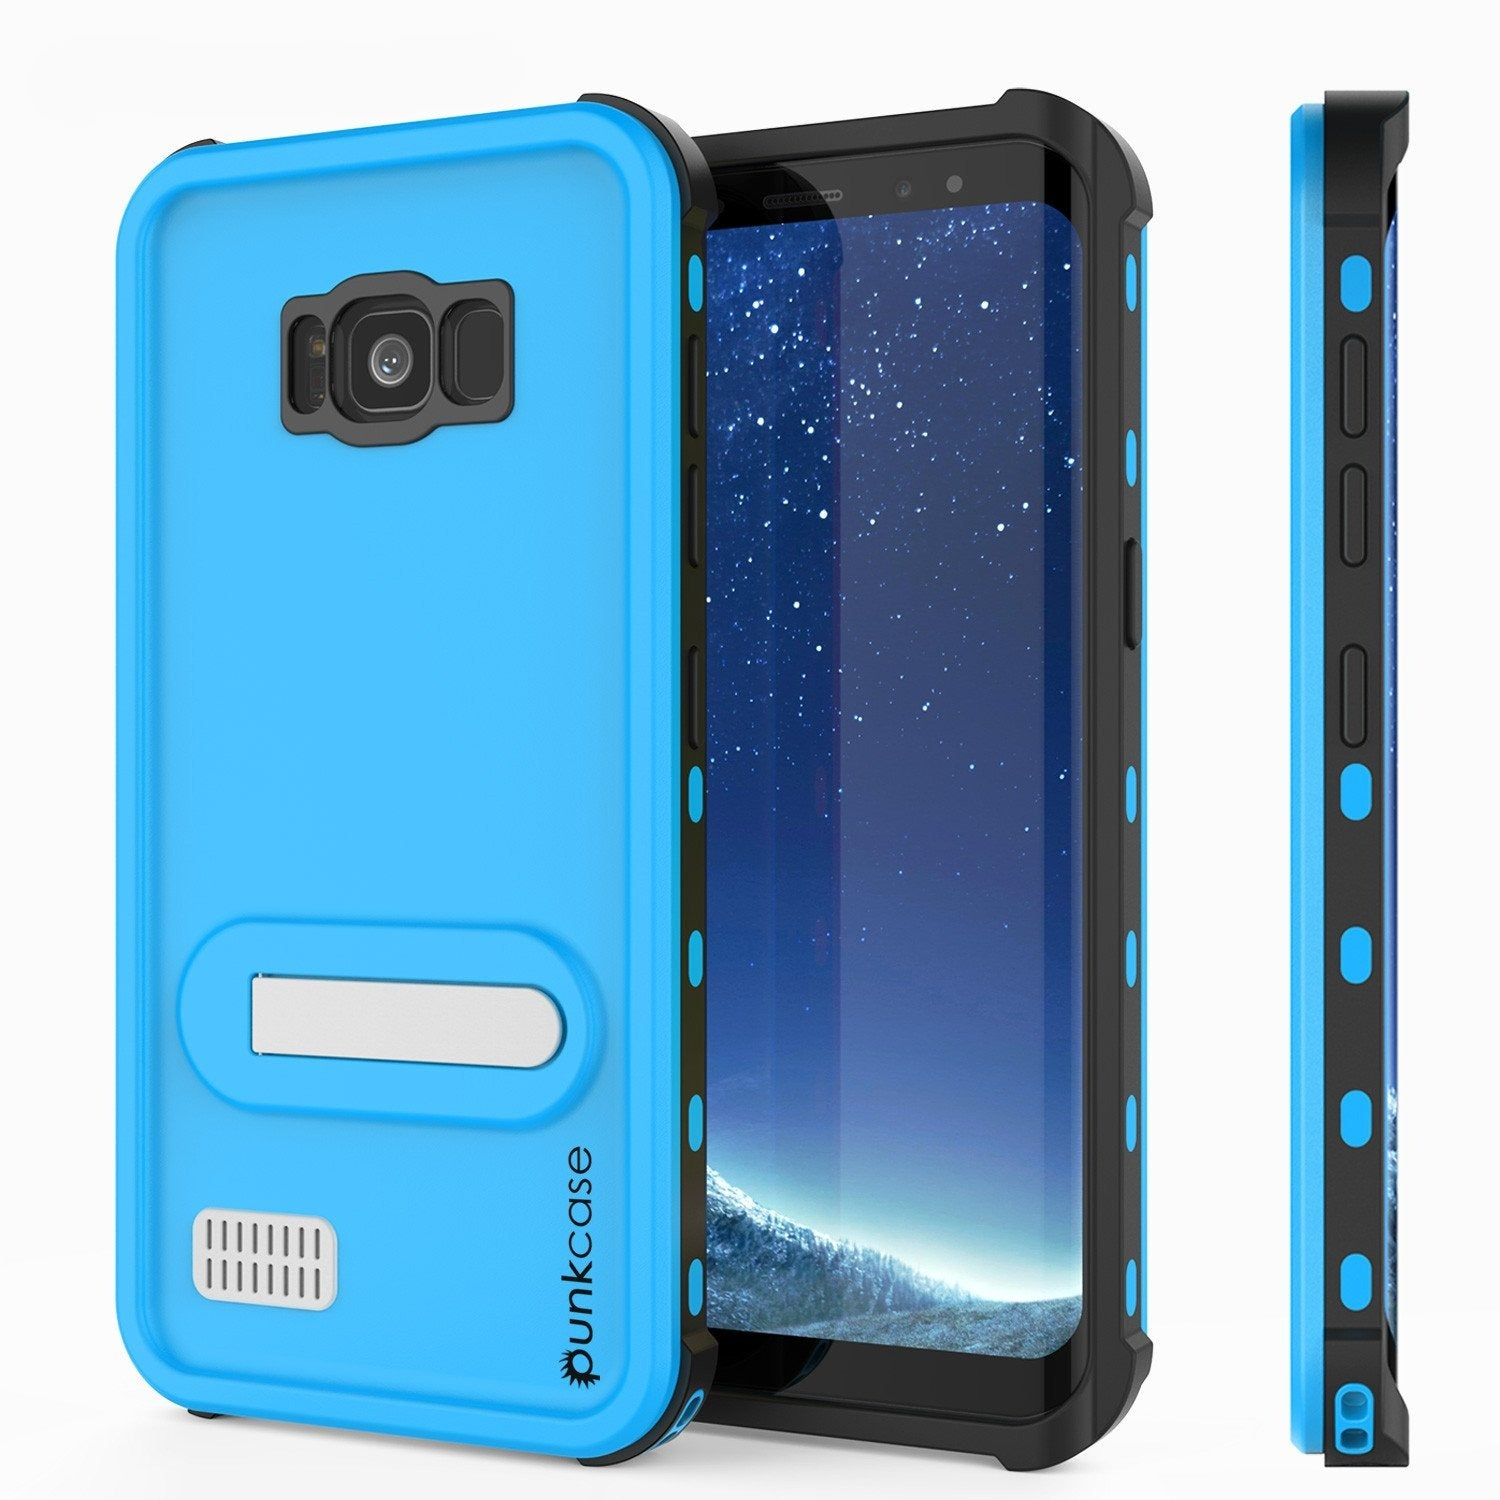 Galaxy S8 Plus Waterproof Case, Punkcase [KickStud Series] [Slim Fit] [IP68 Certified] [Shockproof] [Snowproof] Armor Cover [LIGHT BLUE]